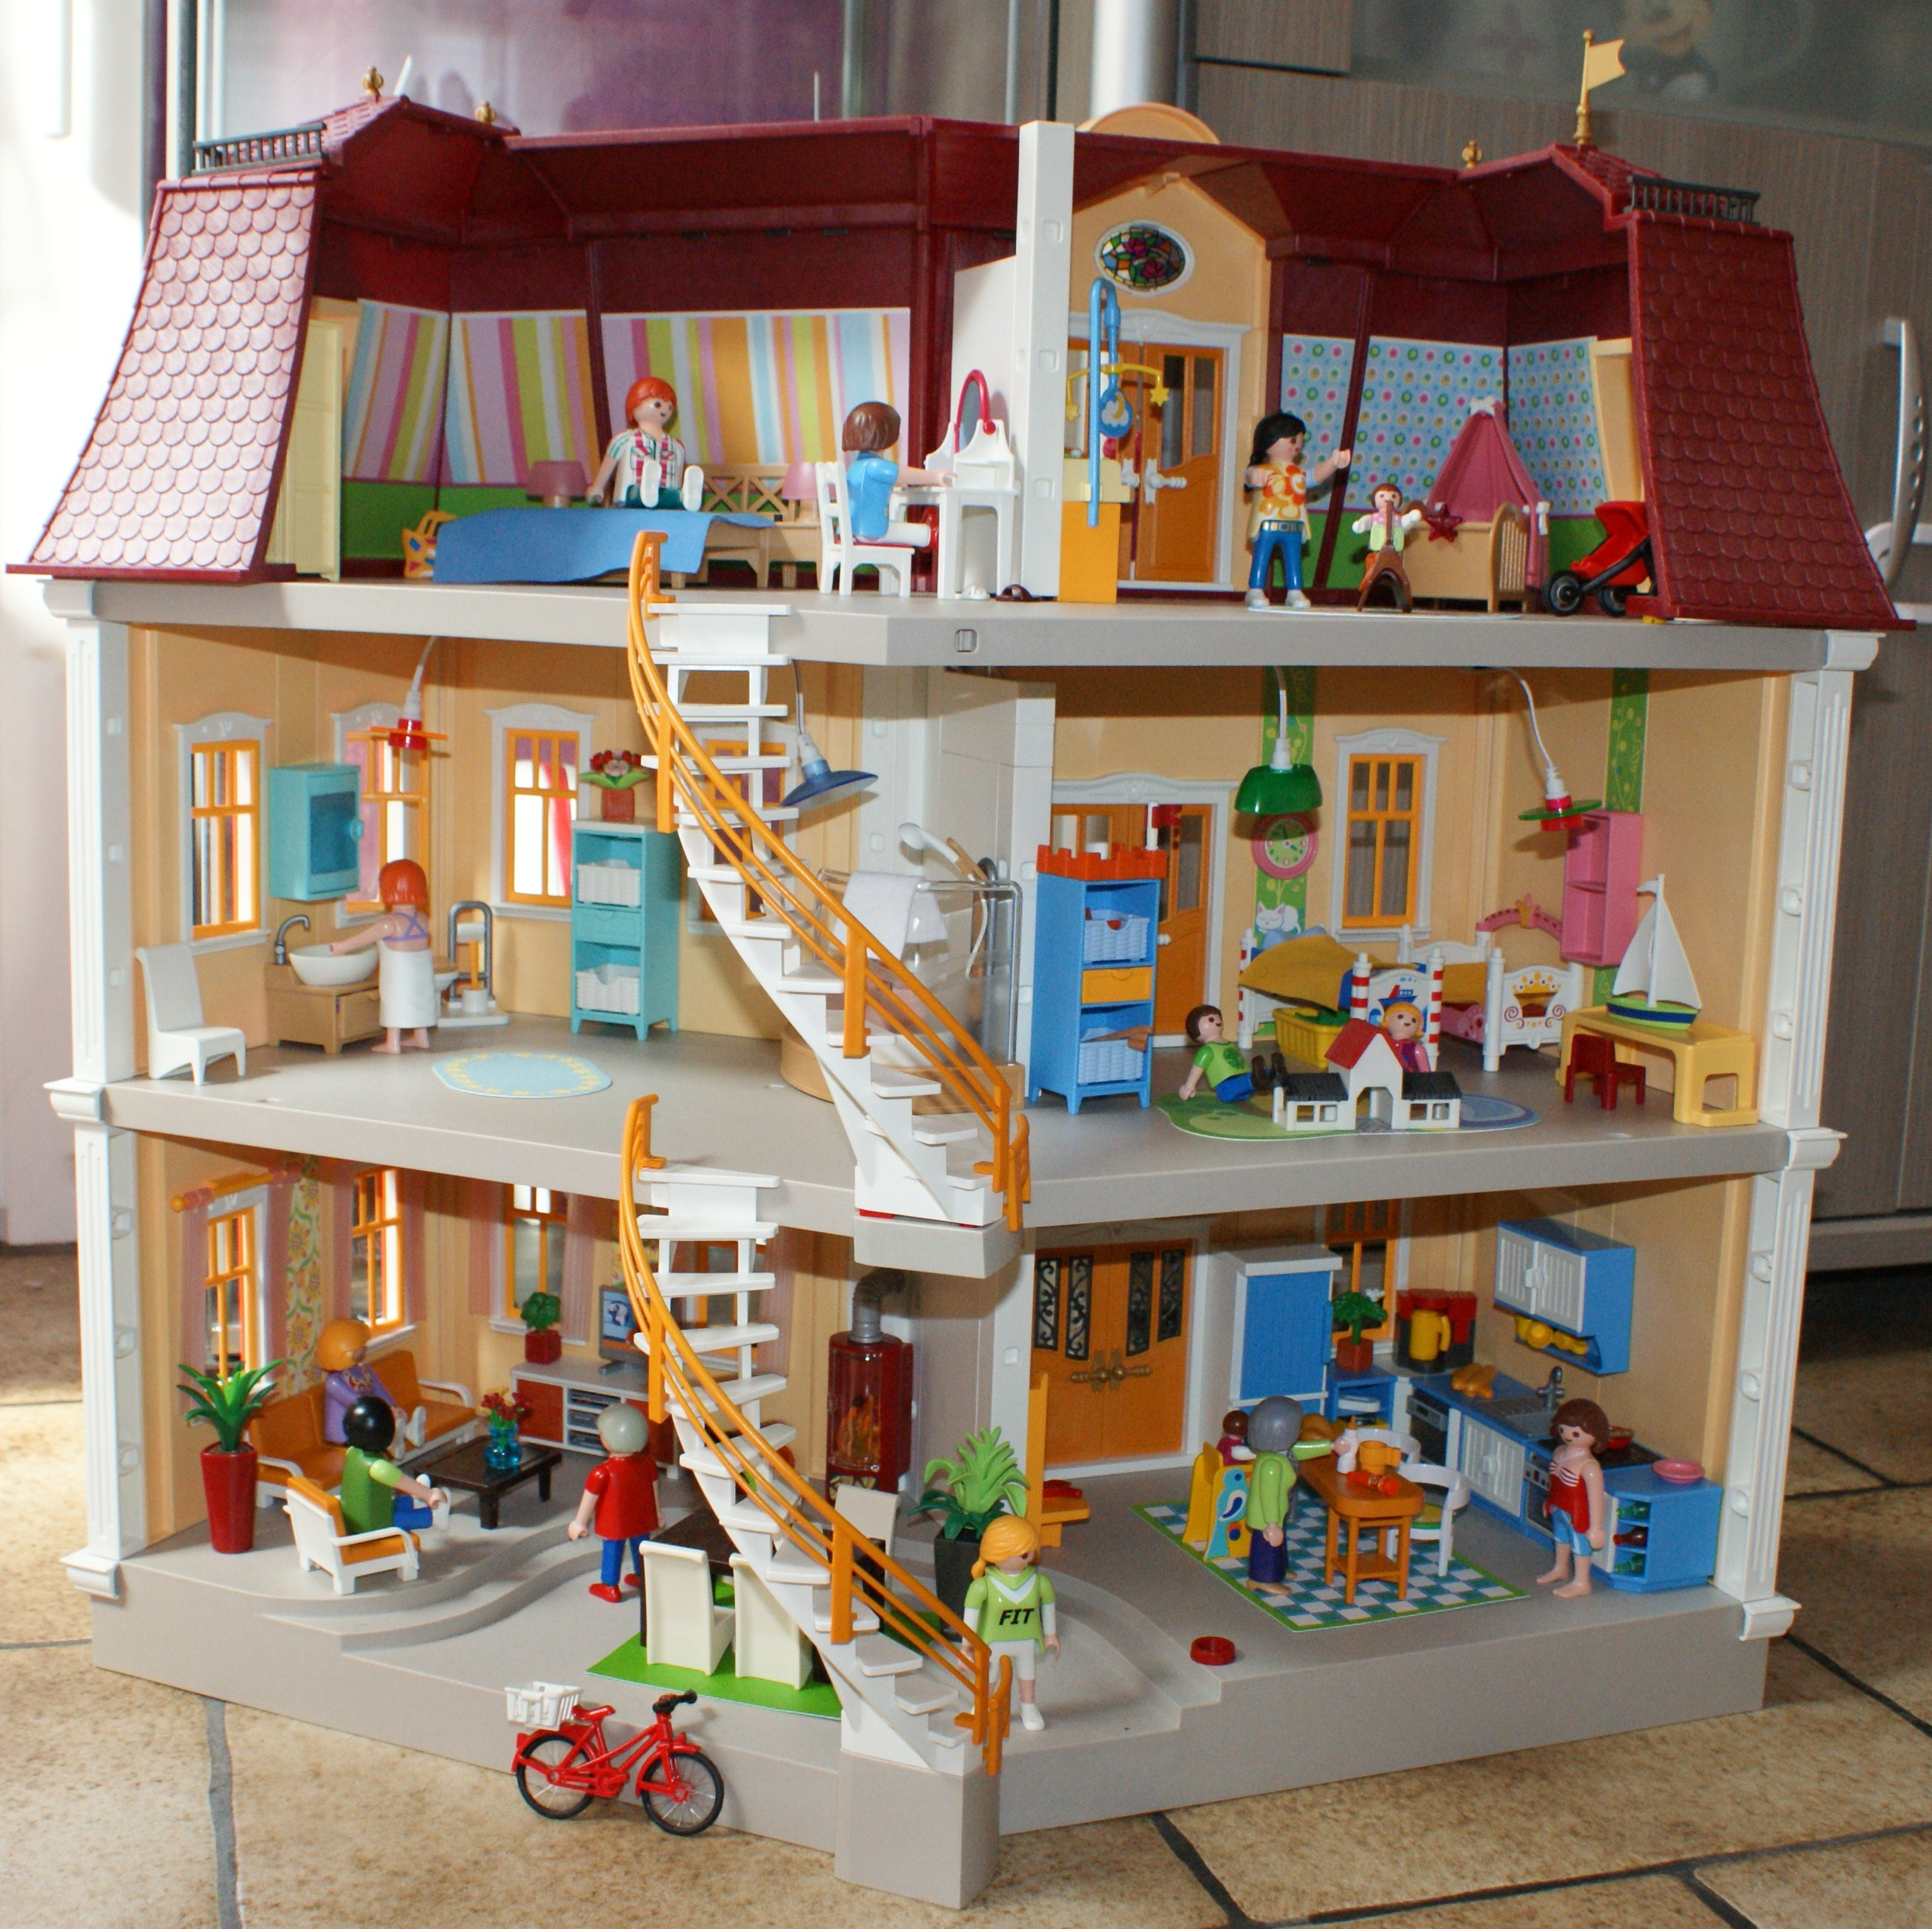 La playmoth rapie sous une etoile for Agrandissement maison moderne playmobil